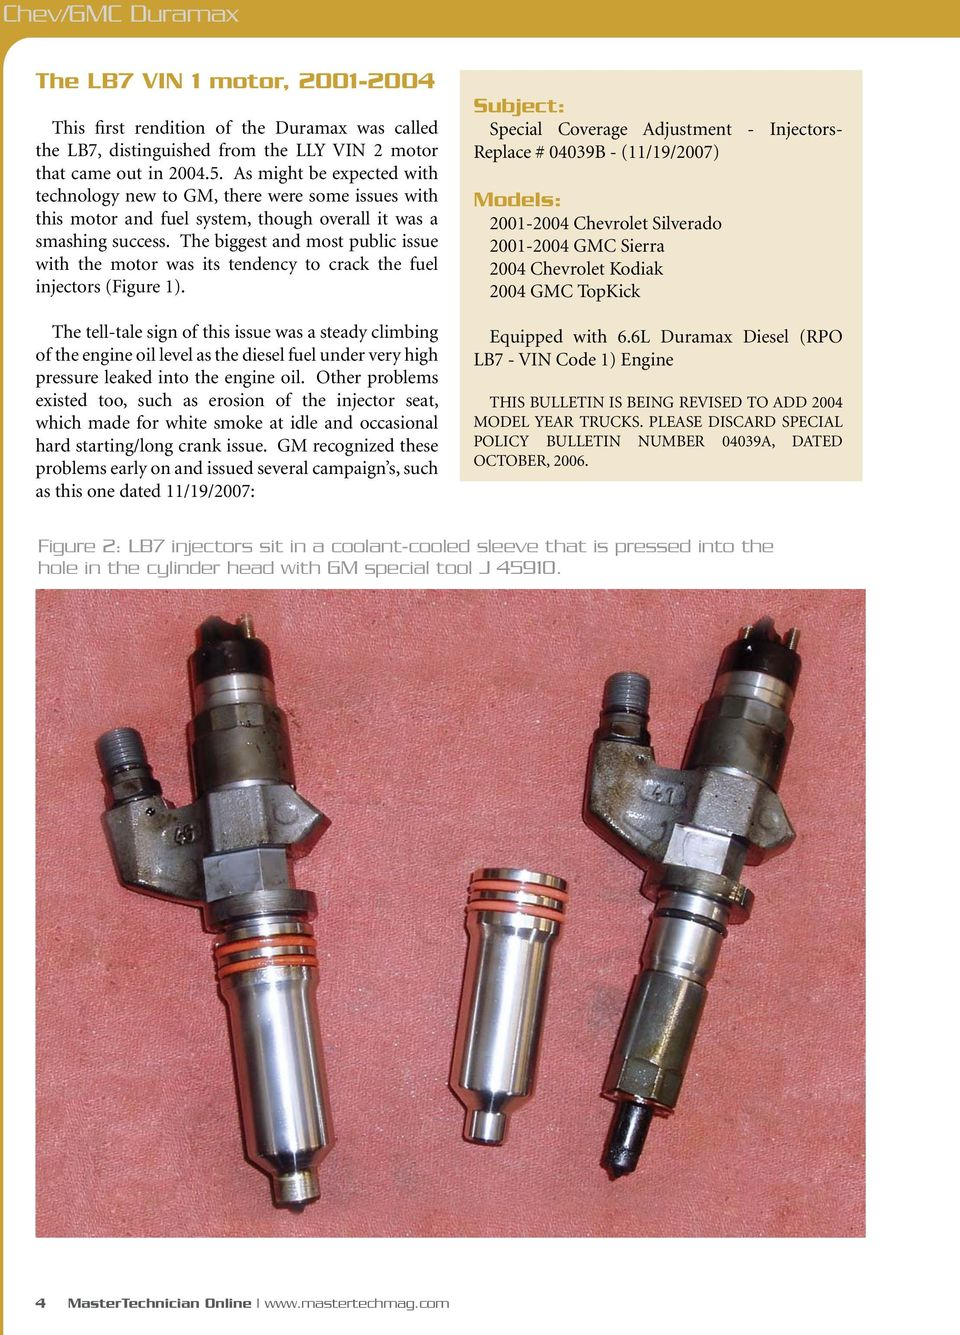 Chev Gmc Duramax Engines Issues Pdf 2004 Fuel Filter Housing The Biggest And Most Public Issue With Motor Was Its Tendency To Crack